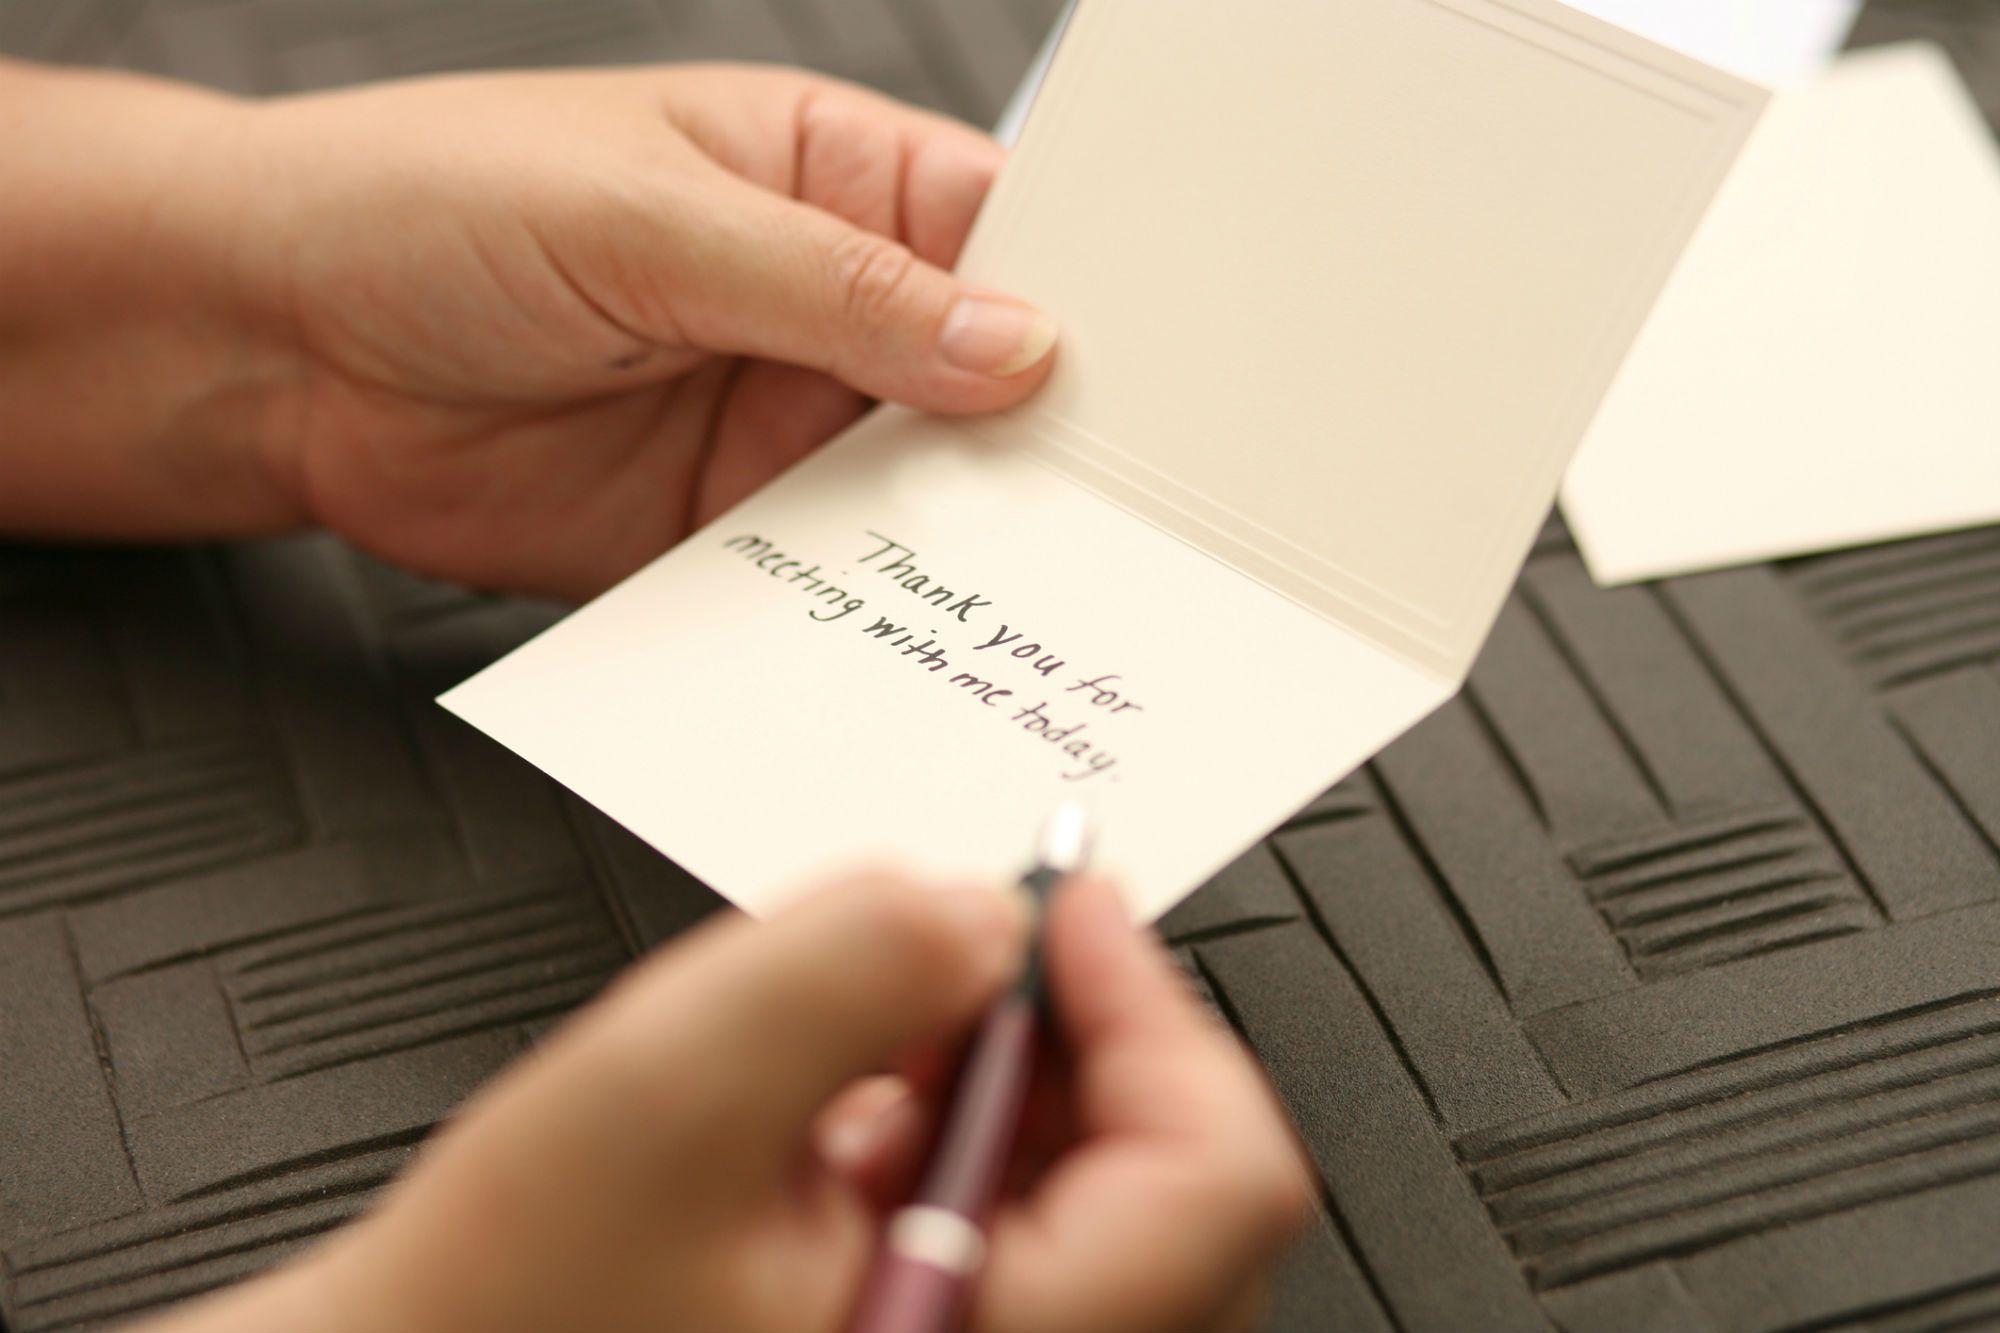 How to Write a Thank You Note to a Customer